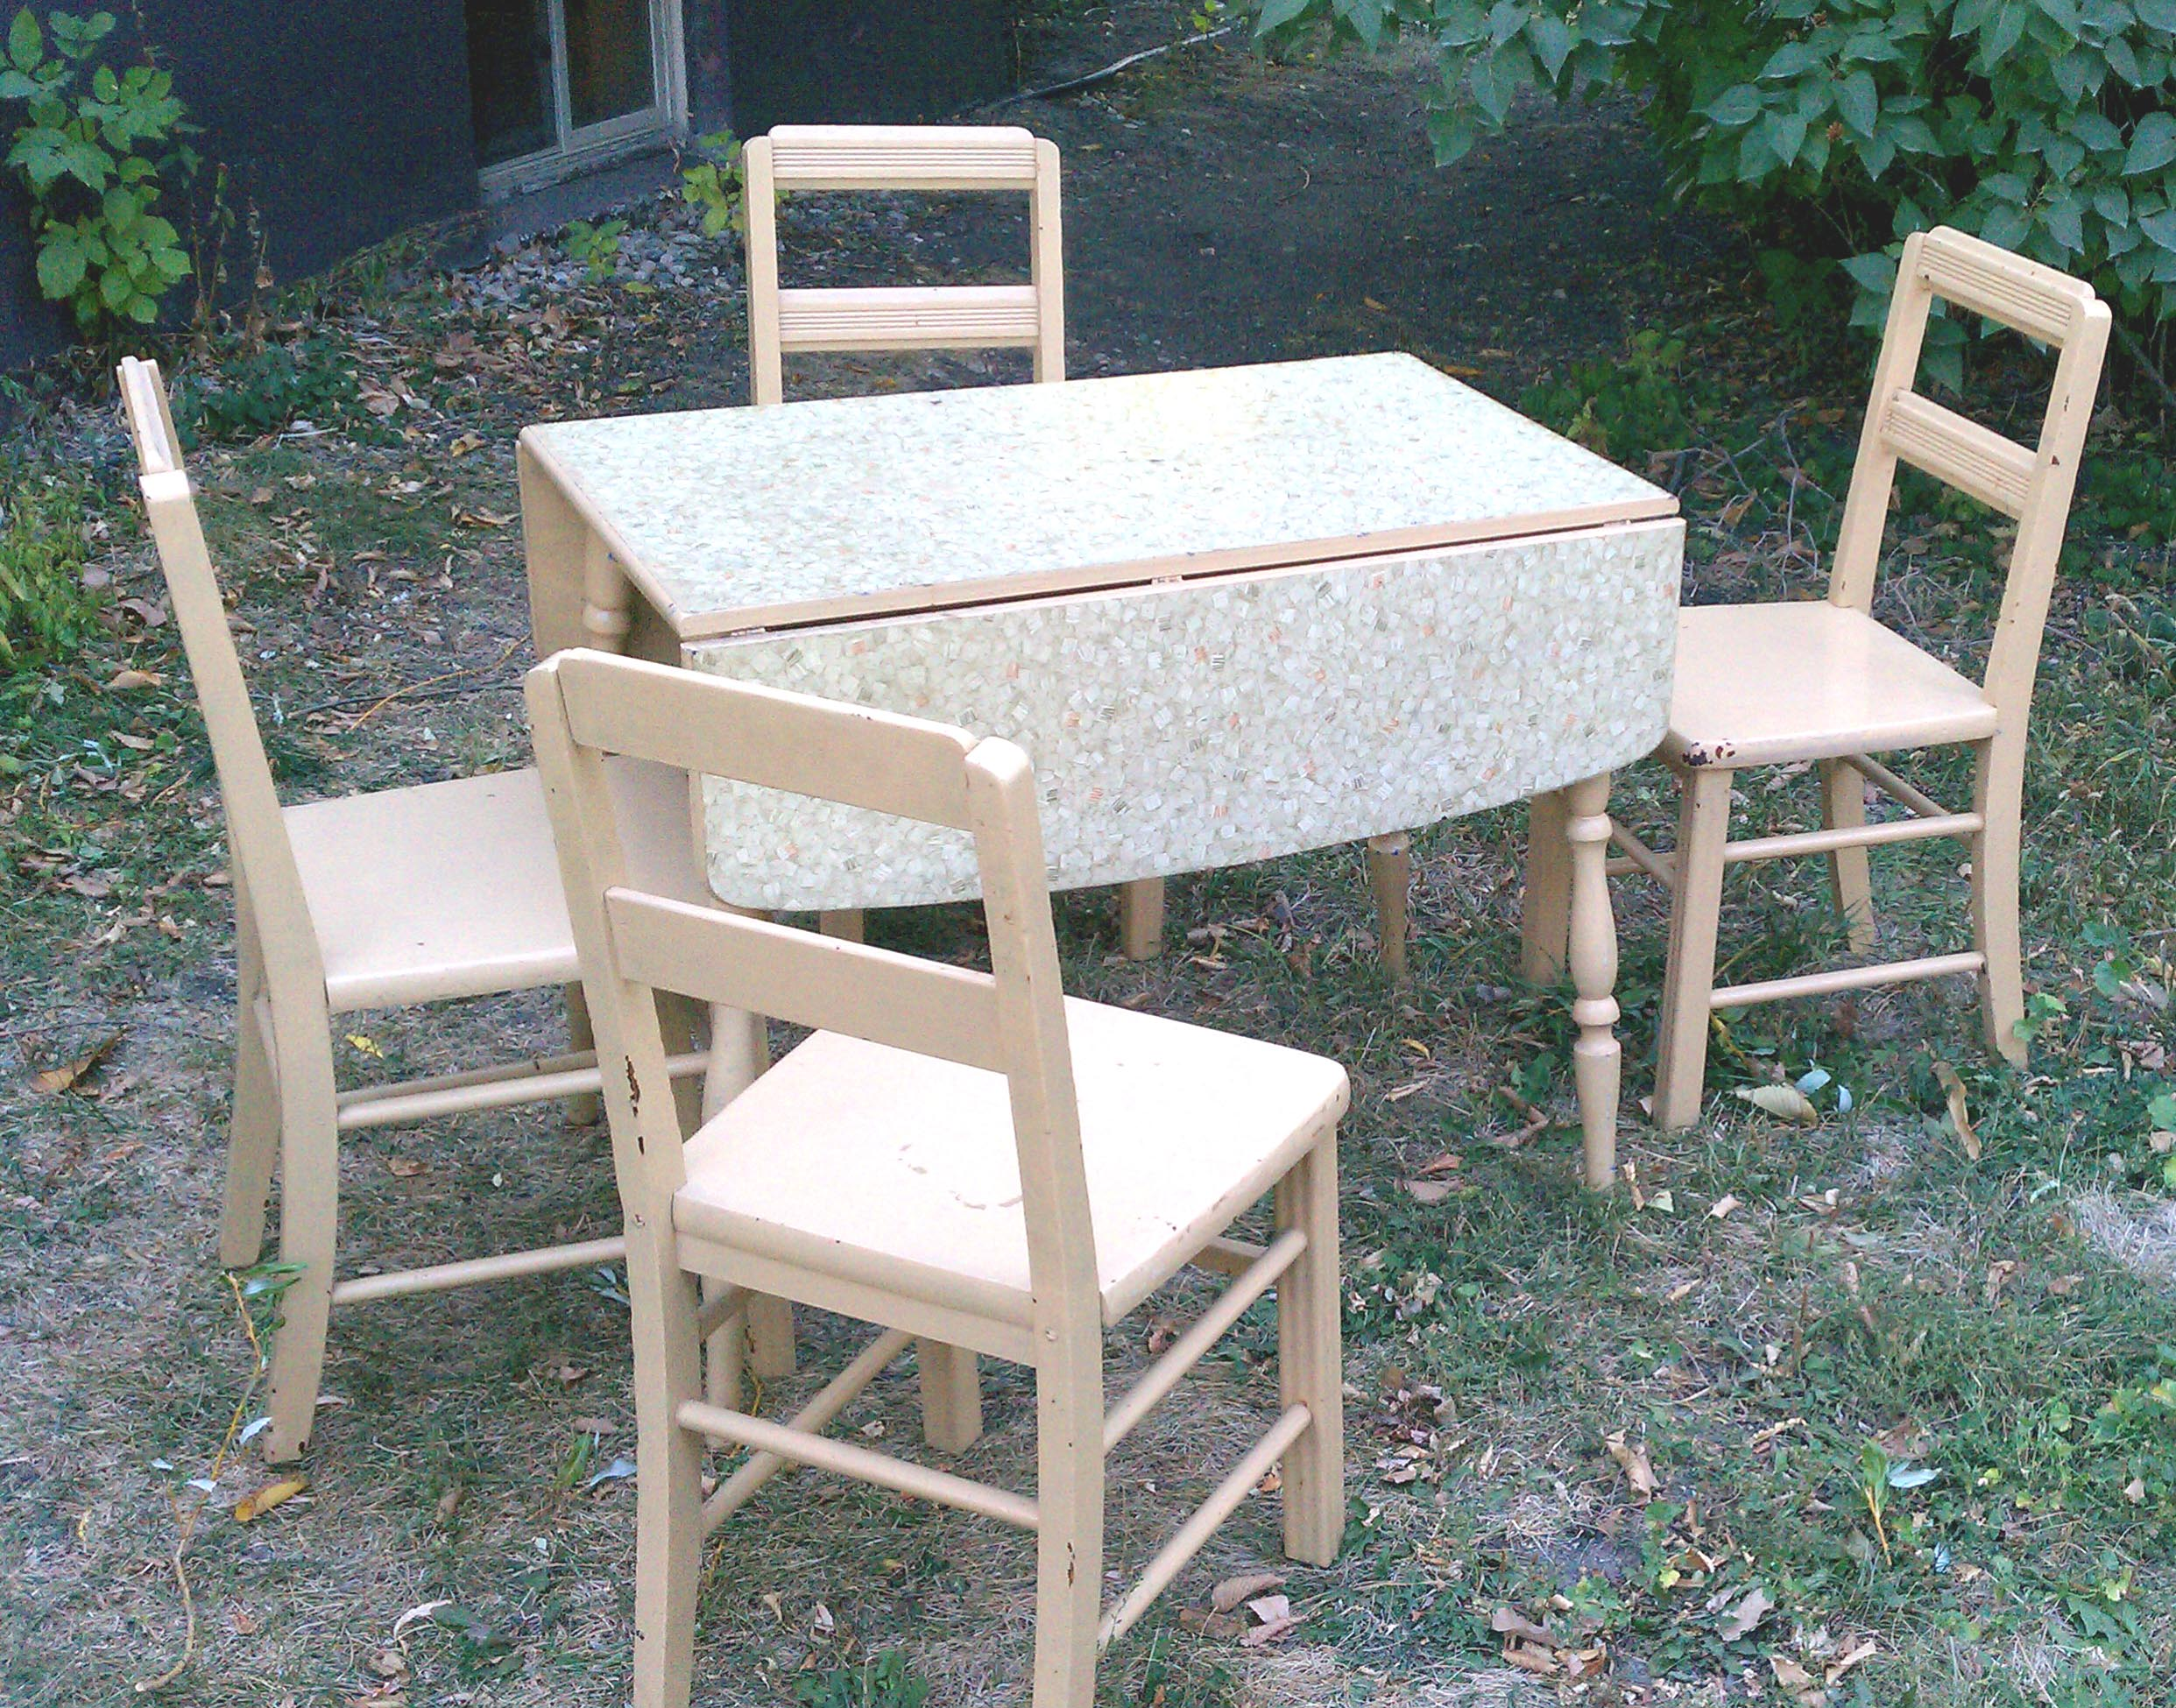 Amazing Chairs We Have Your Collectibles Drop Leaf Table On Wheels Drop Leaf Table Cart Table Chairs Table houzz-03 Antique Drop Leaf Table